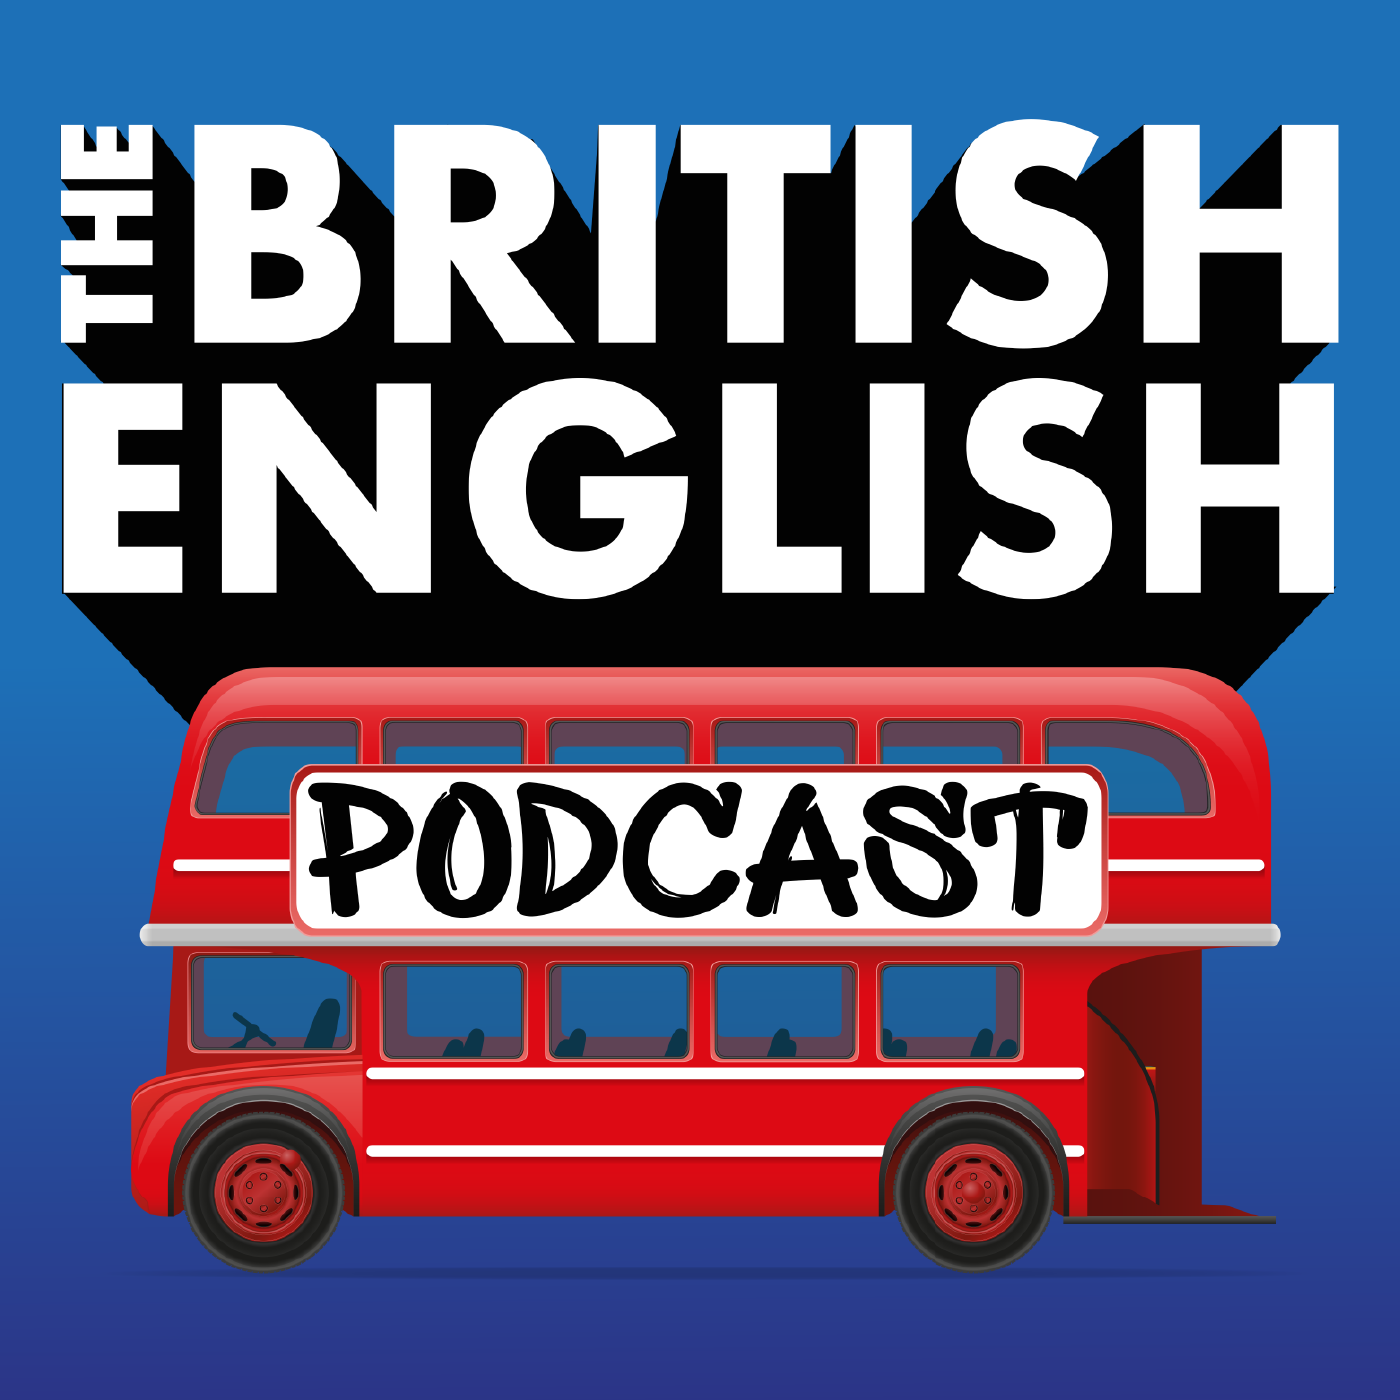 The British English Podcast podcast show image